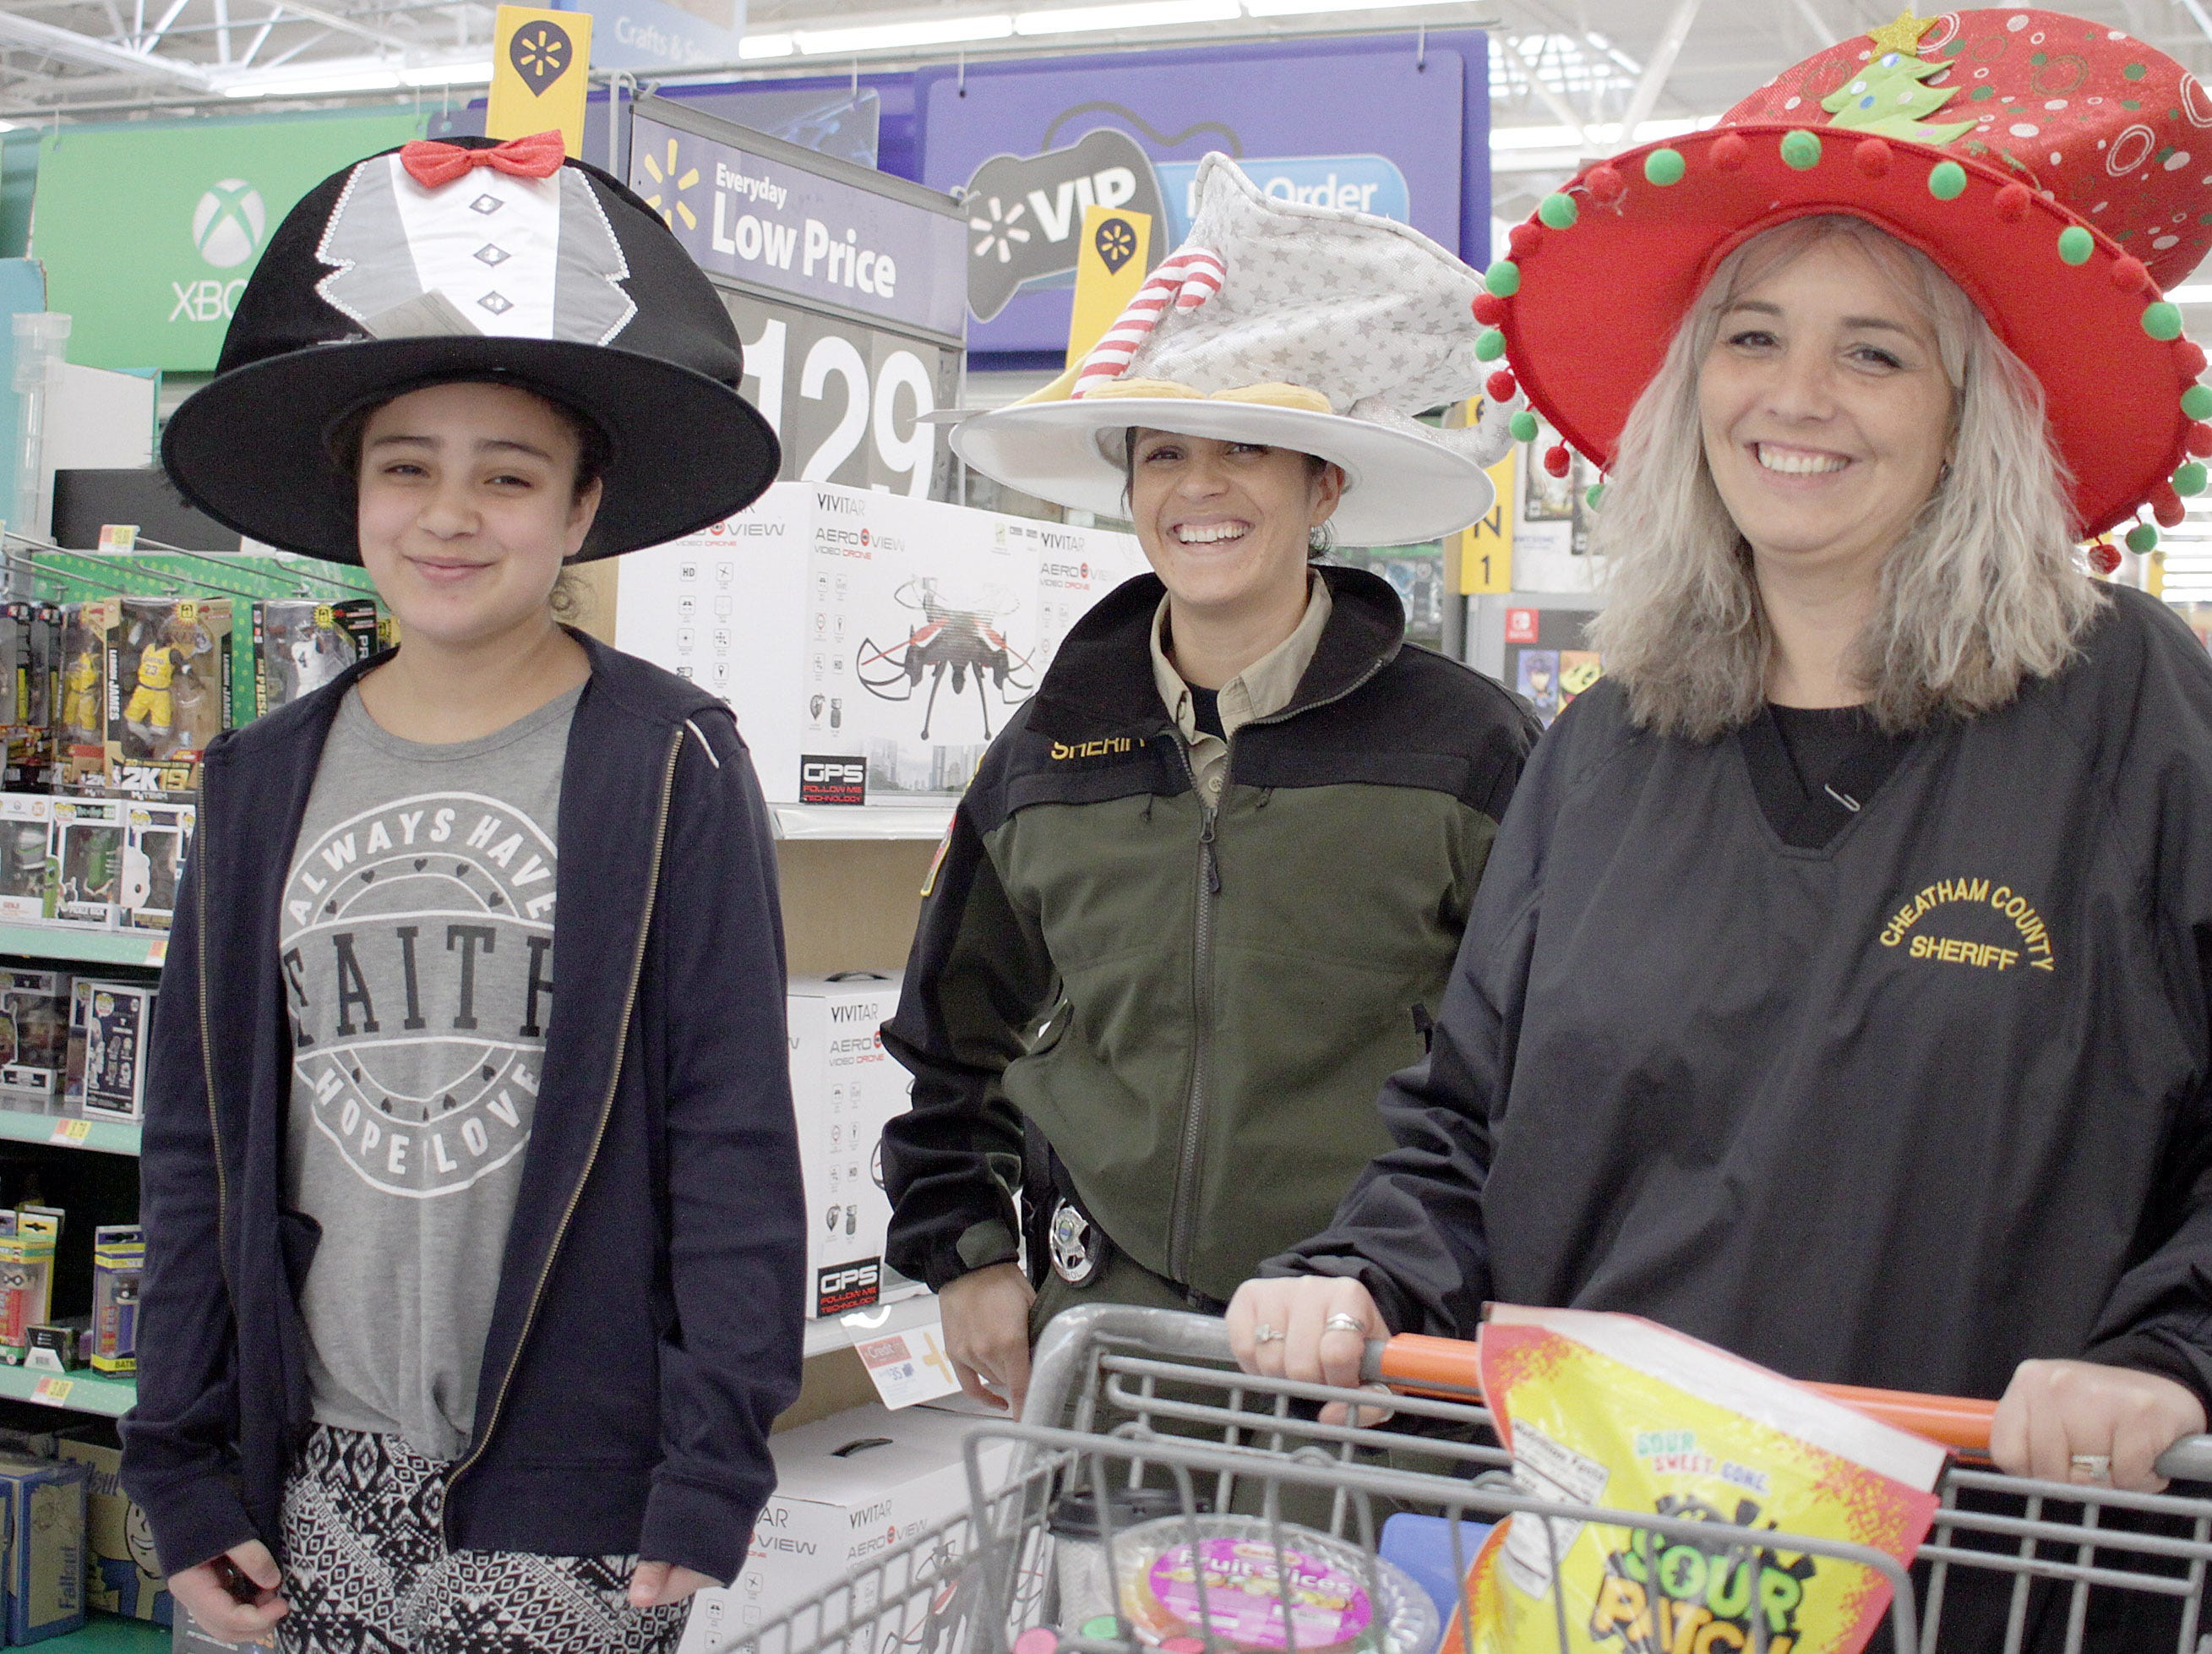 L-R Carley Penaloze, Deputy Dahianna Arguello and Amy Harris wear silly hats during Shop with a Cop in Ashland City, TN on Saturday, December 15, 2018.